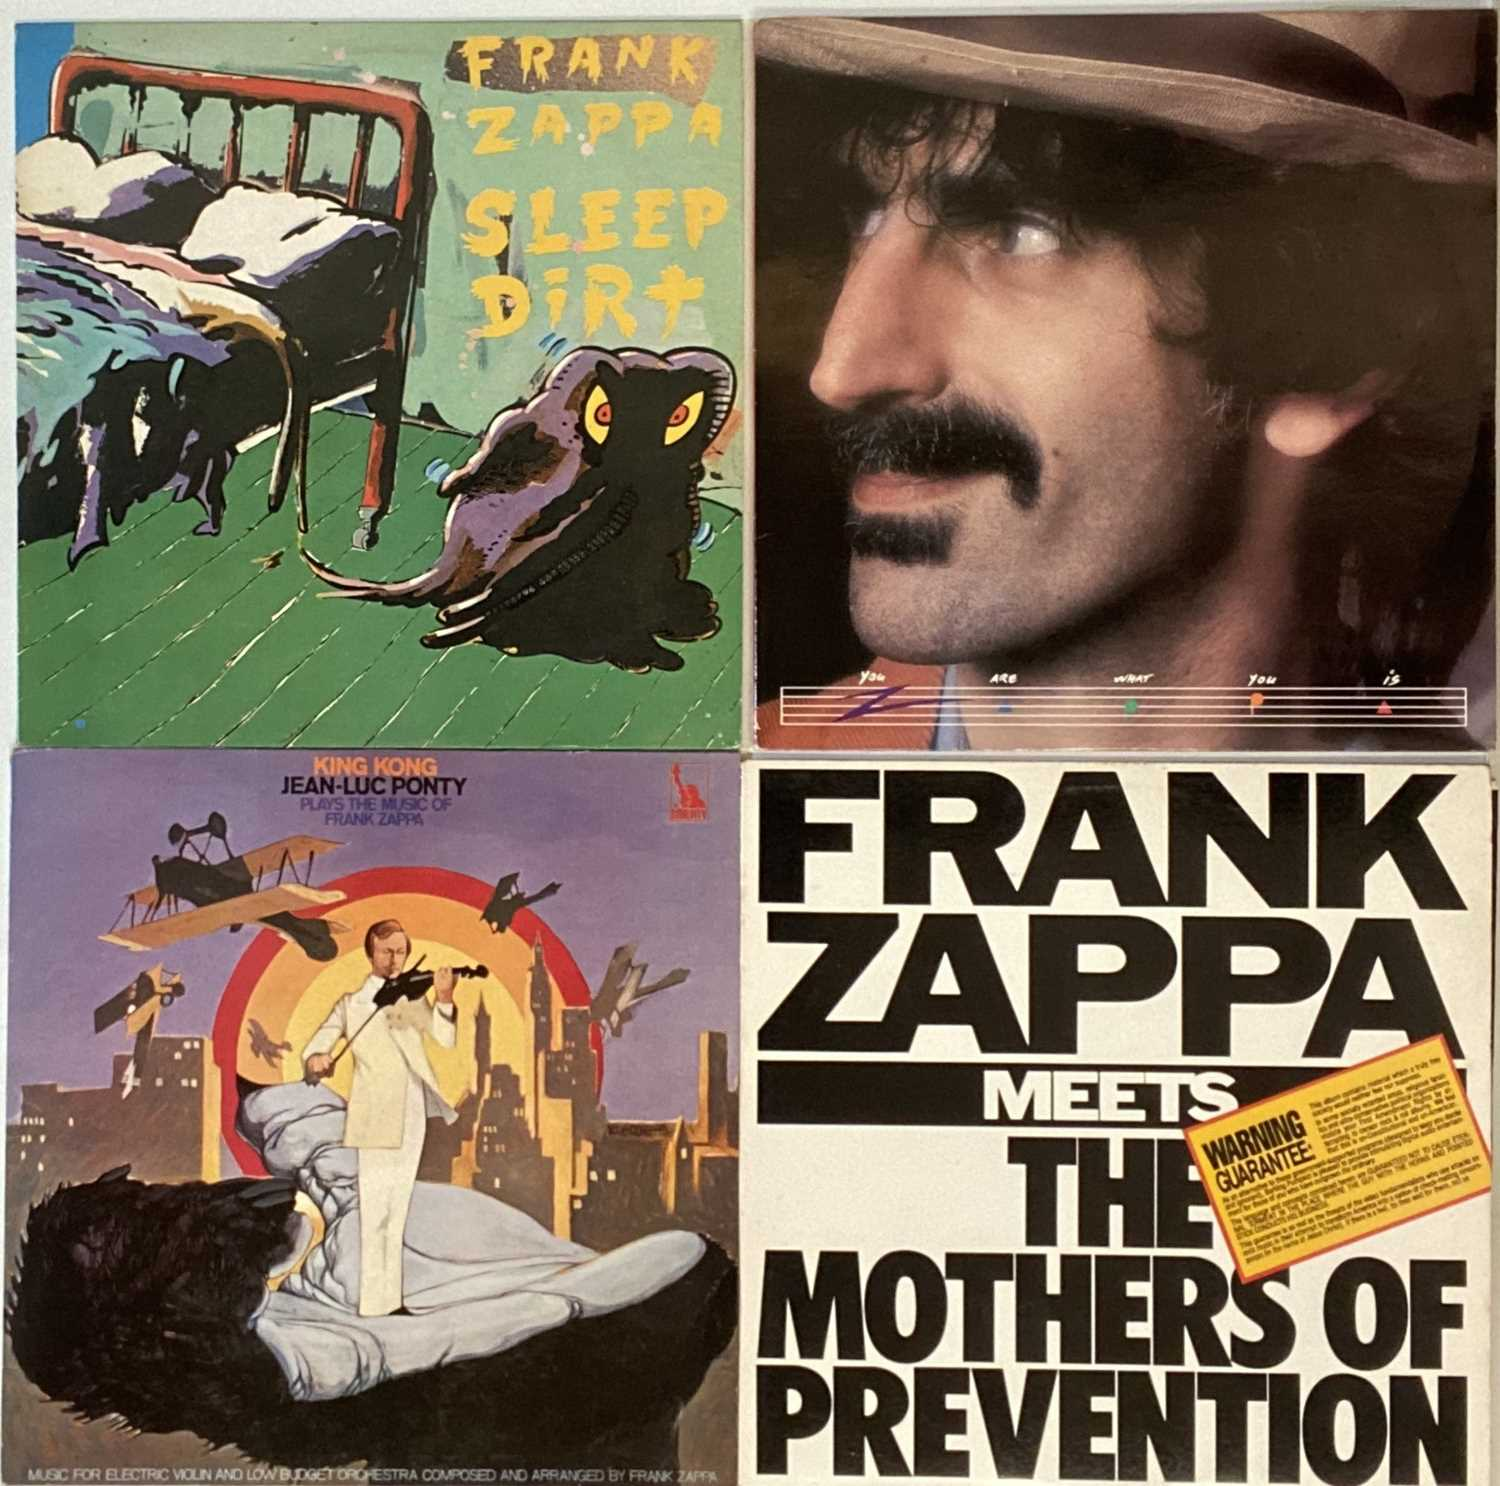 FRANK ZAPPA - LP COLLECTION - Image 3 of 3